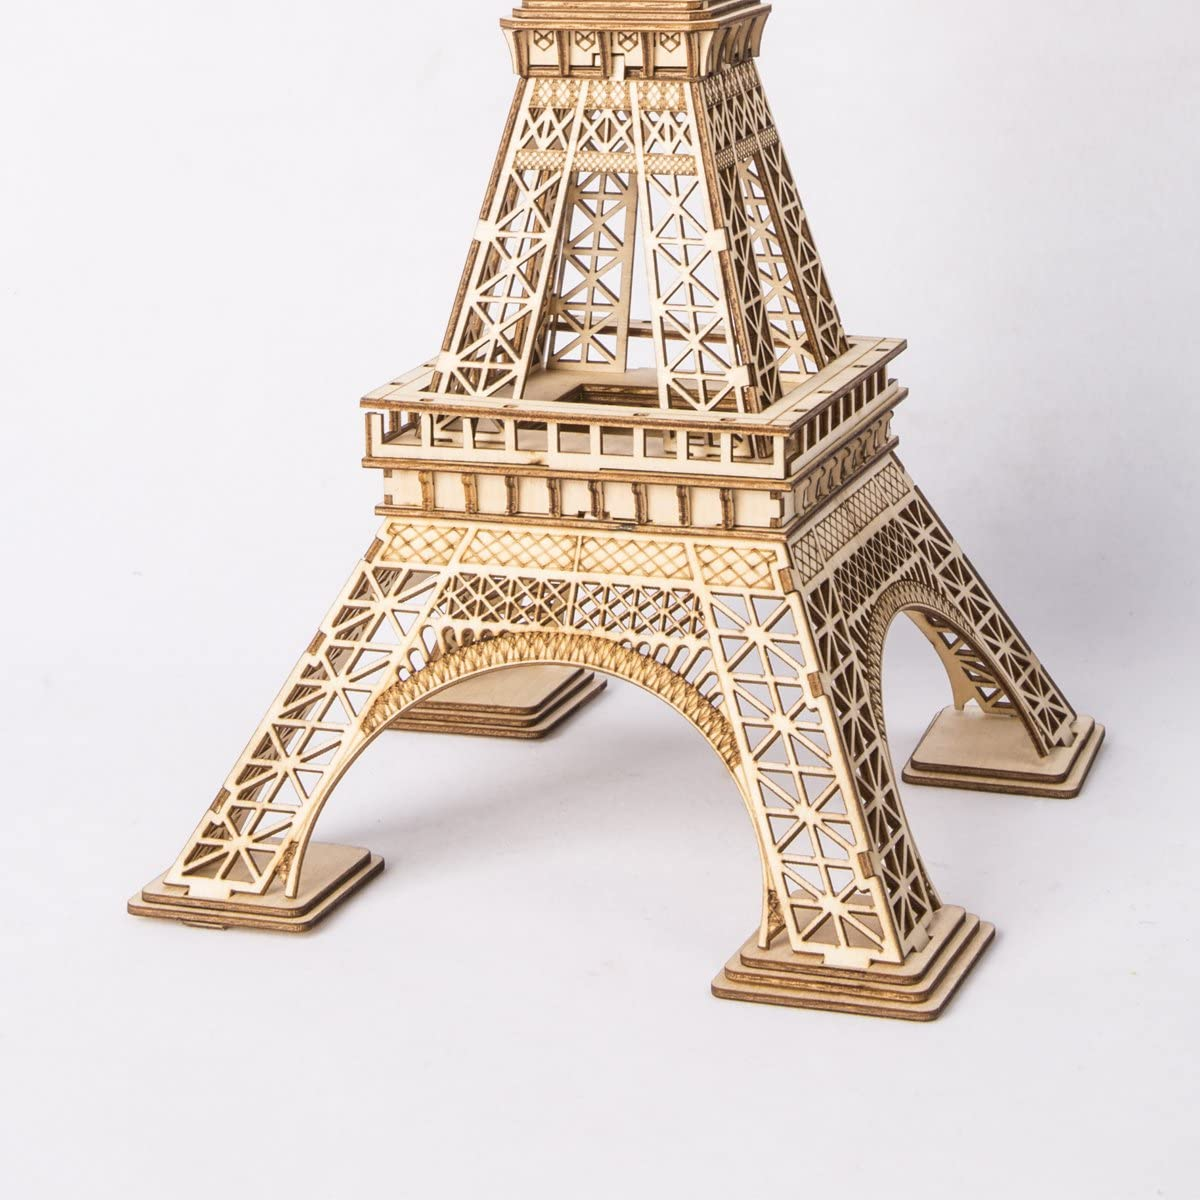 Eiffel Tower Model Kits to Build RoWood 3D Wooden Puzzle Toy Gift for Kids /& Adults 122 PCS